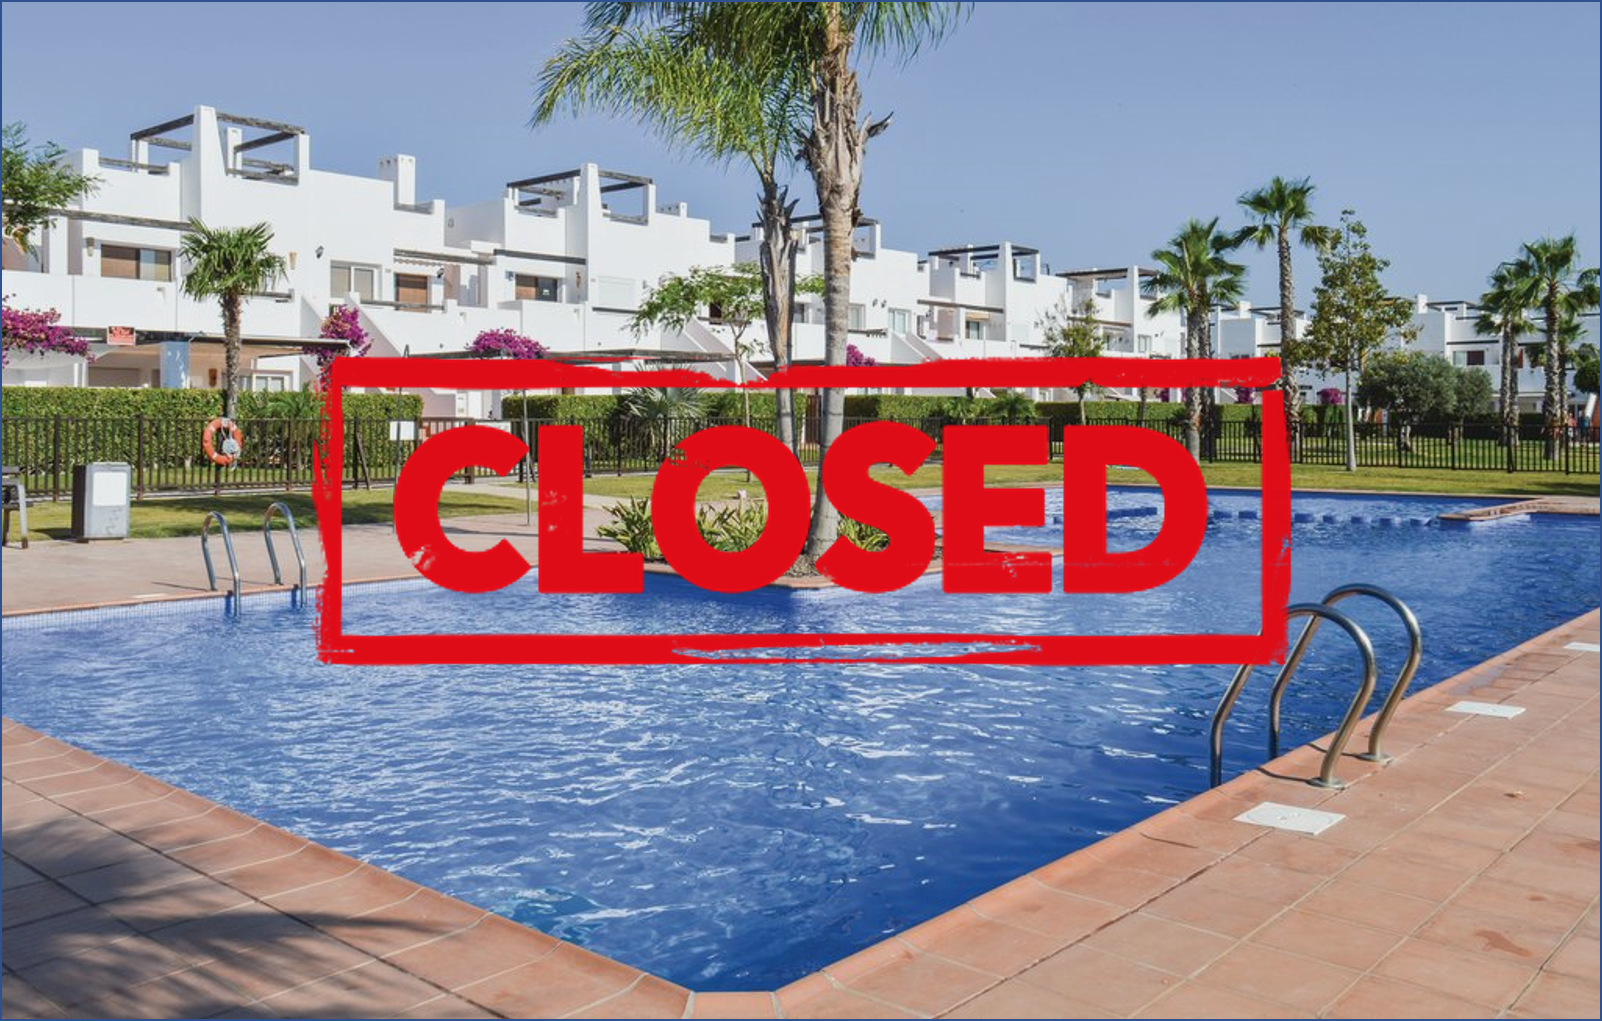 Pool and play areas are to be closed from 1st December